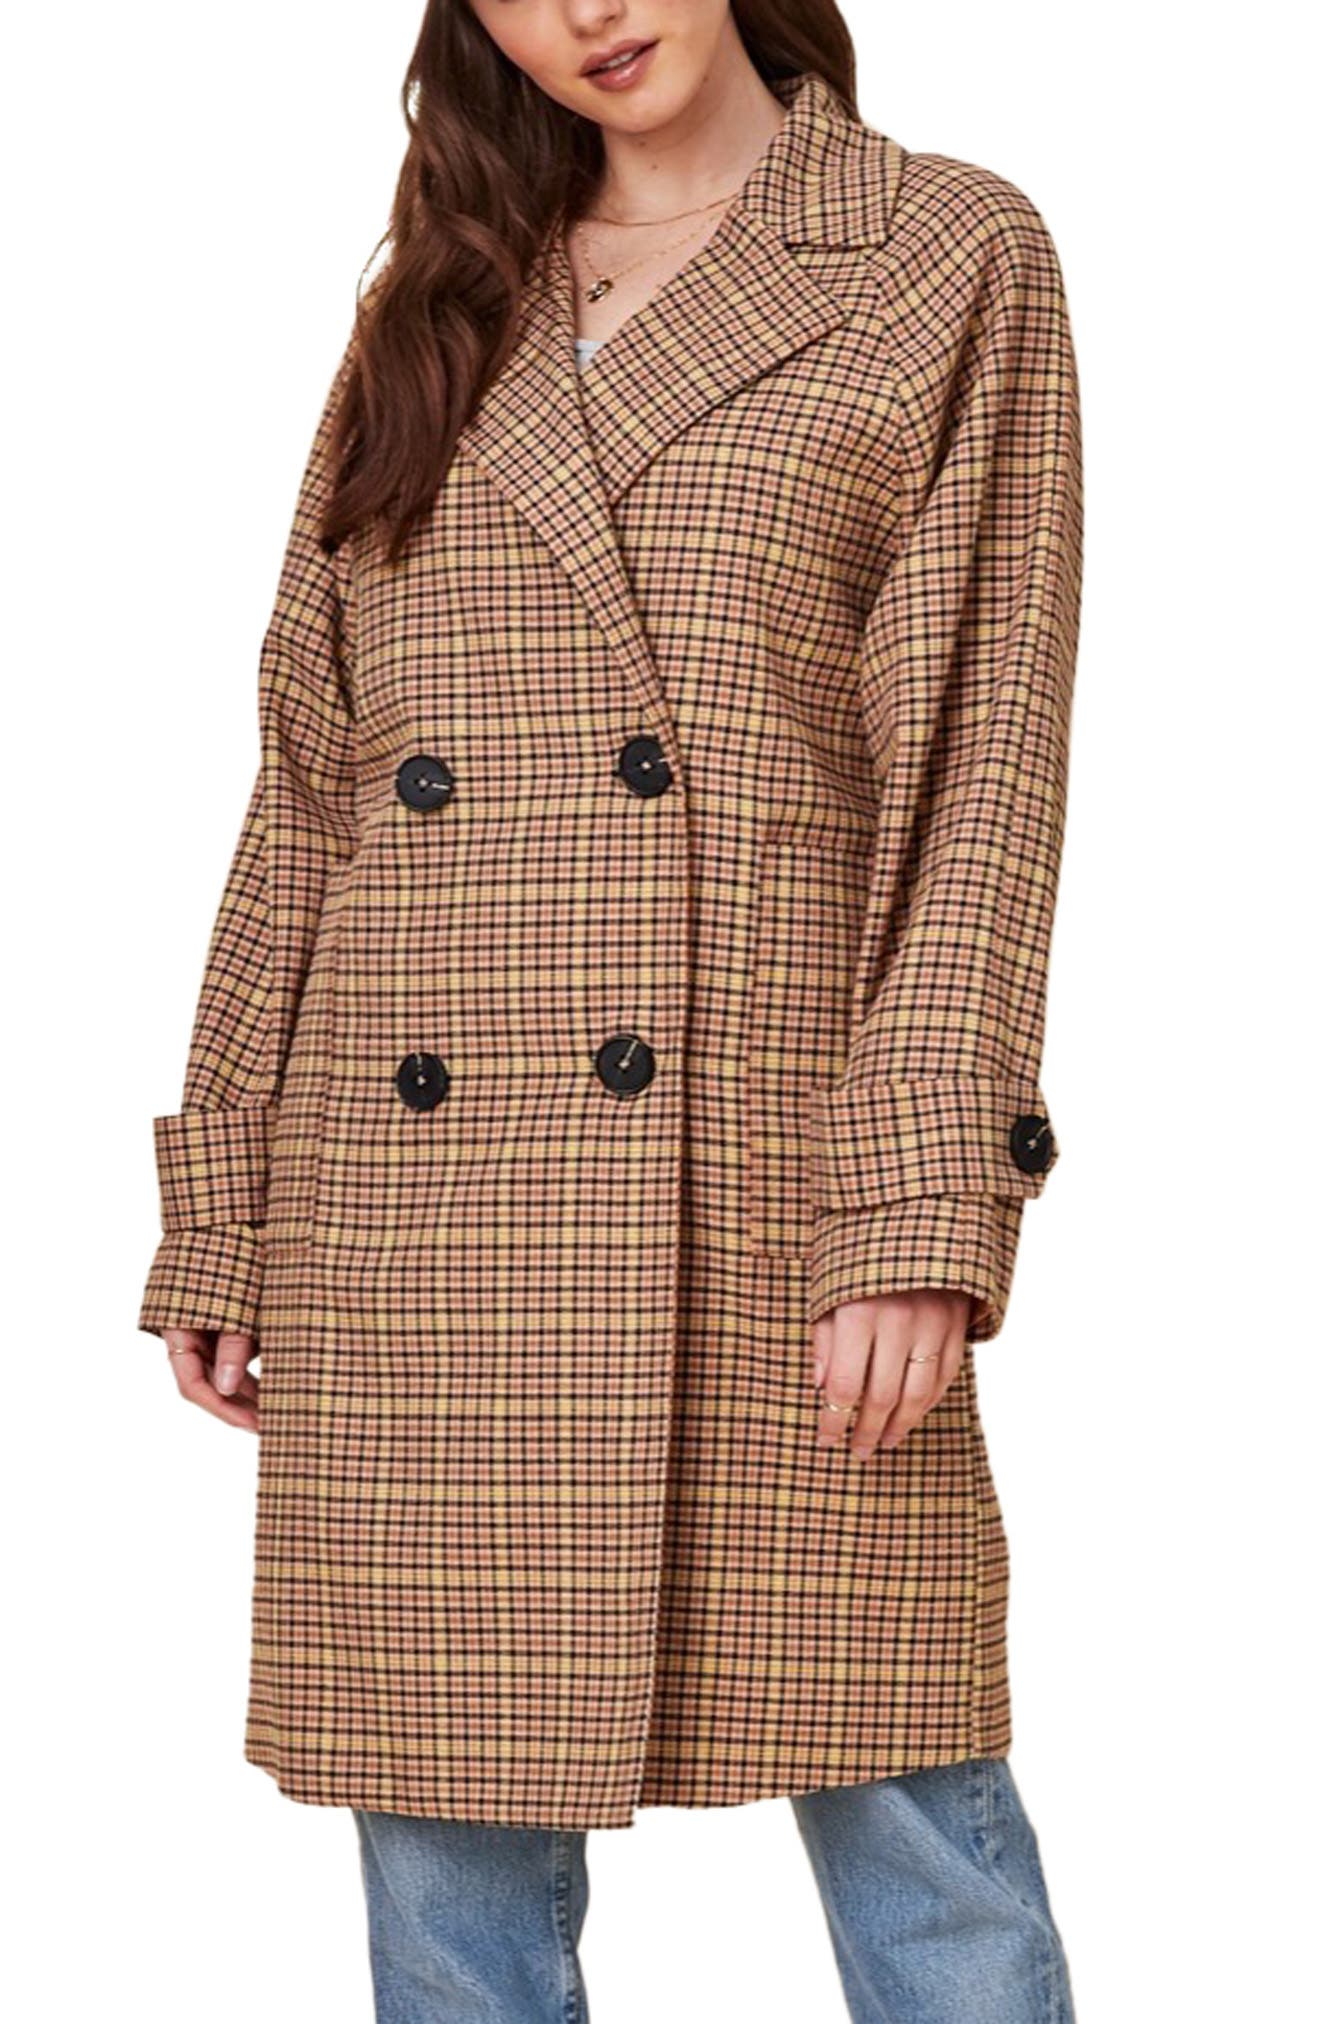 1940s Style Coats and Jackets for Sale Womens Lost  Wander Tumbleweed Plaid Double Breasted Jacket $120.00 AT vintagedancer.com